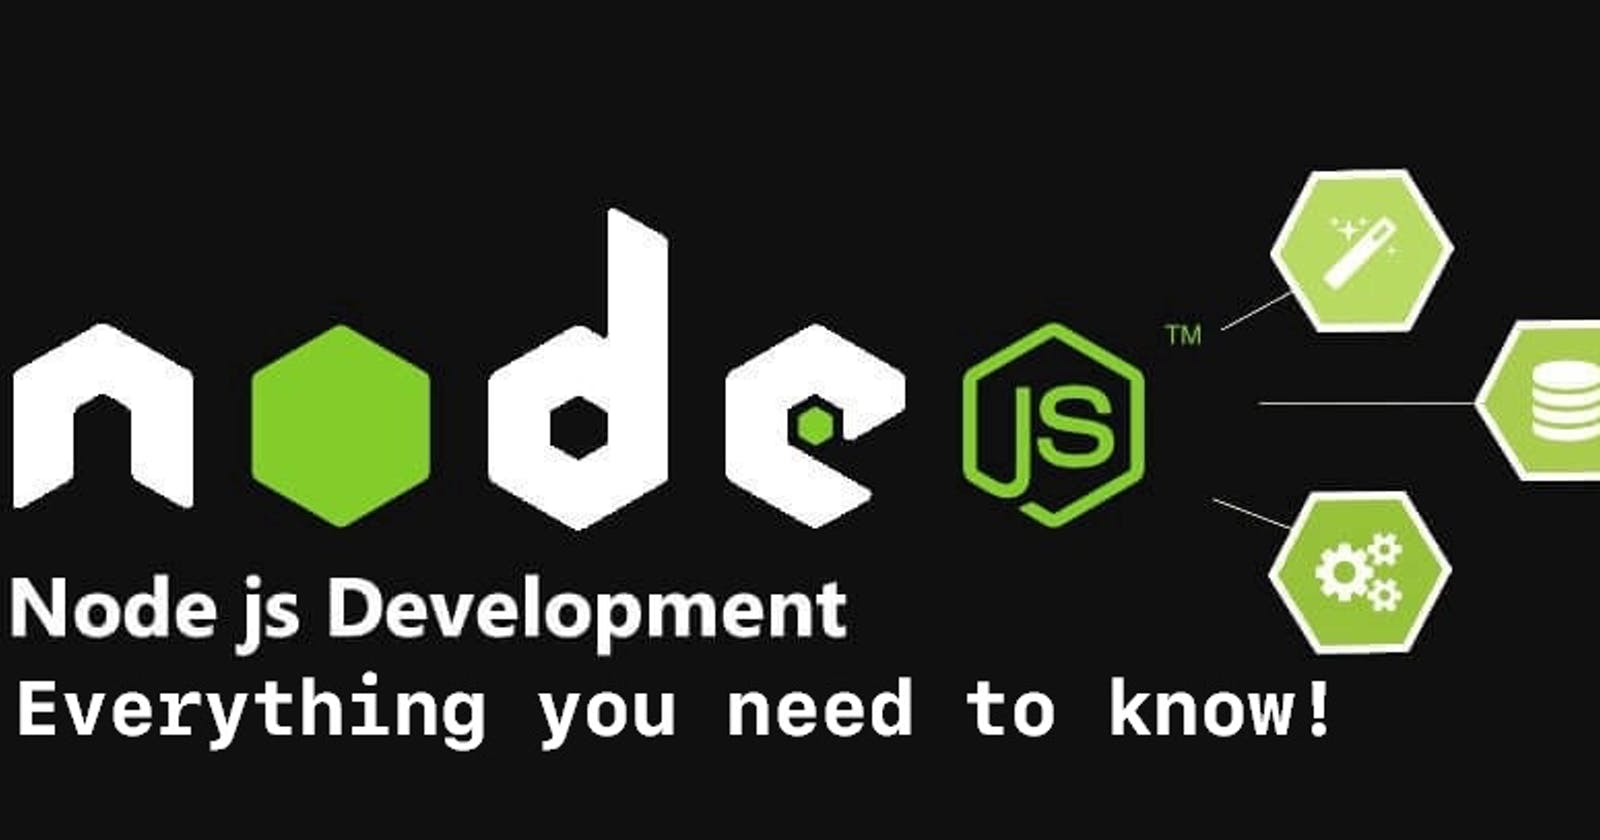 Node.js - Everything You Need To Know